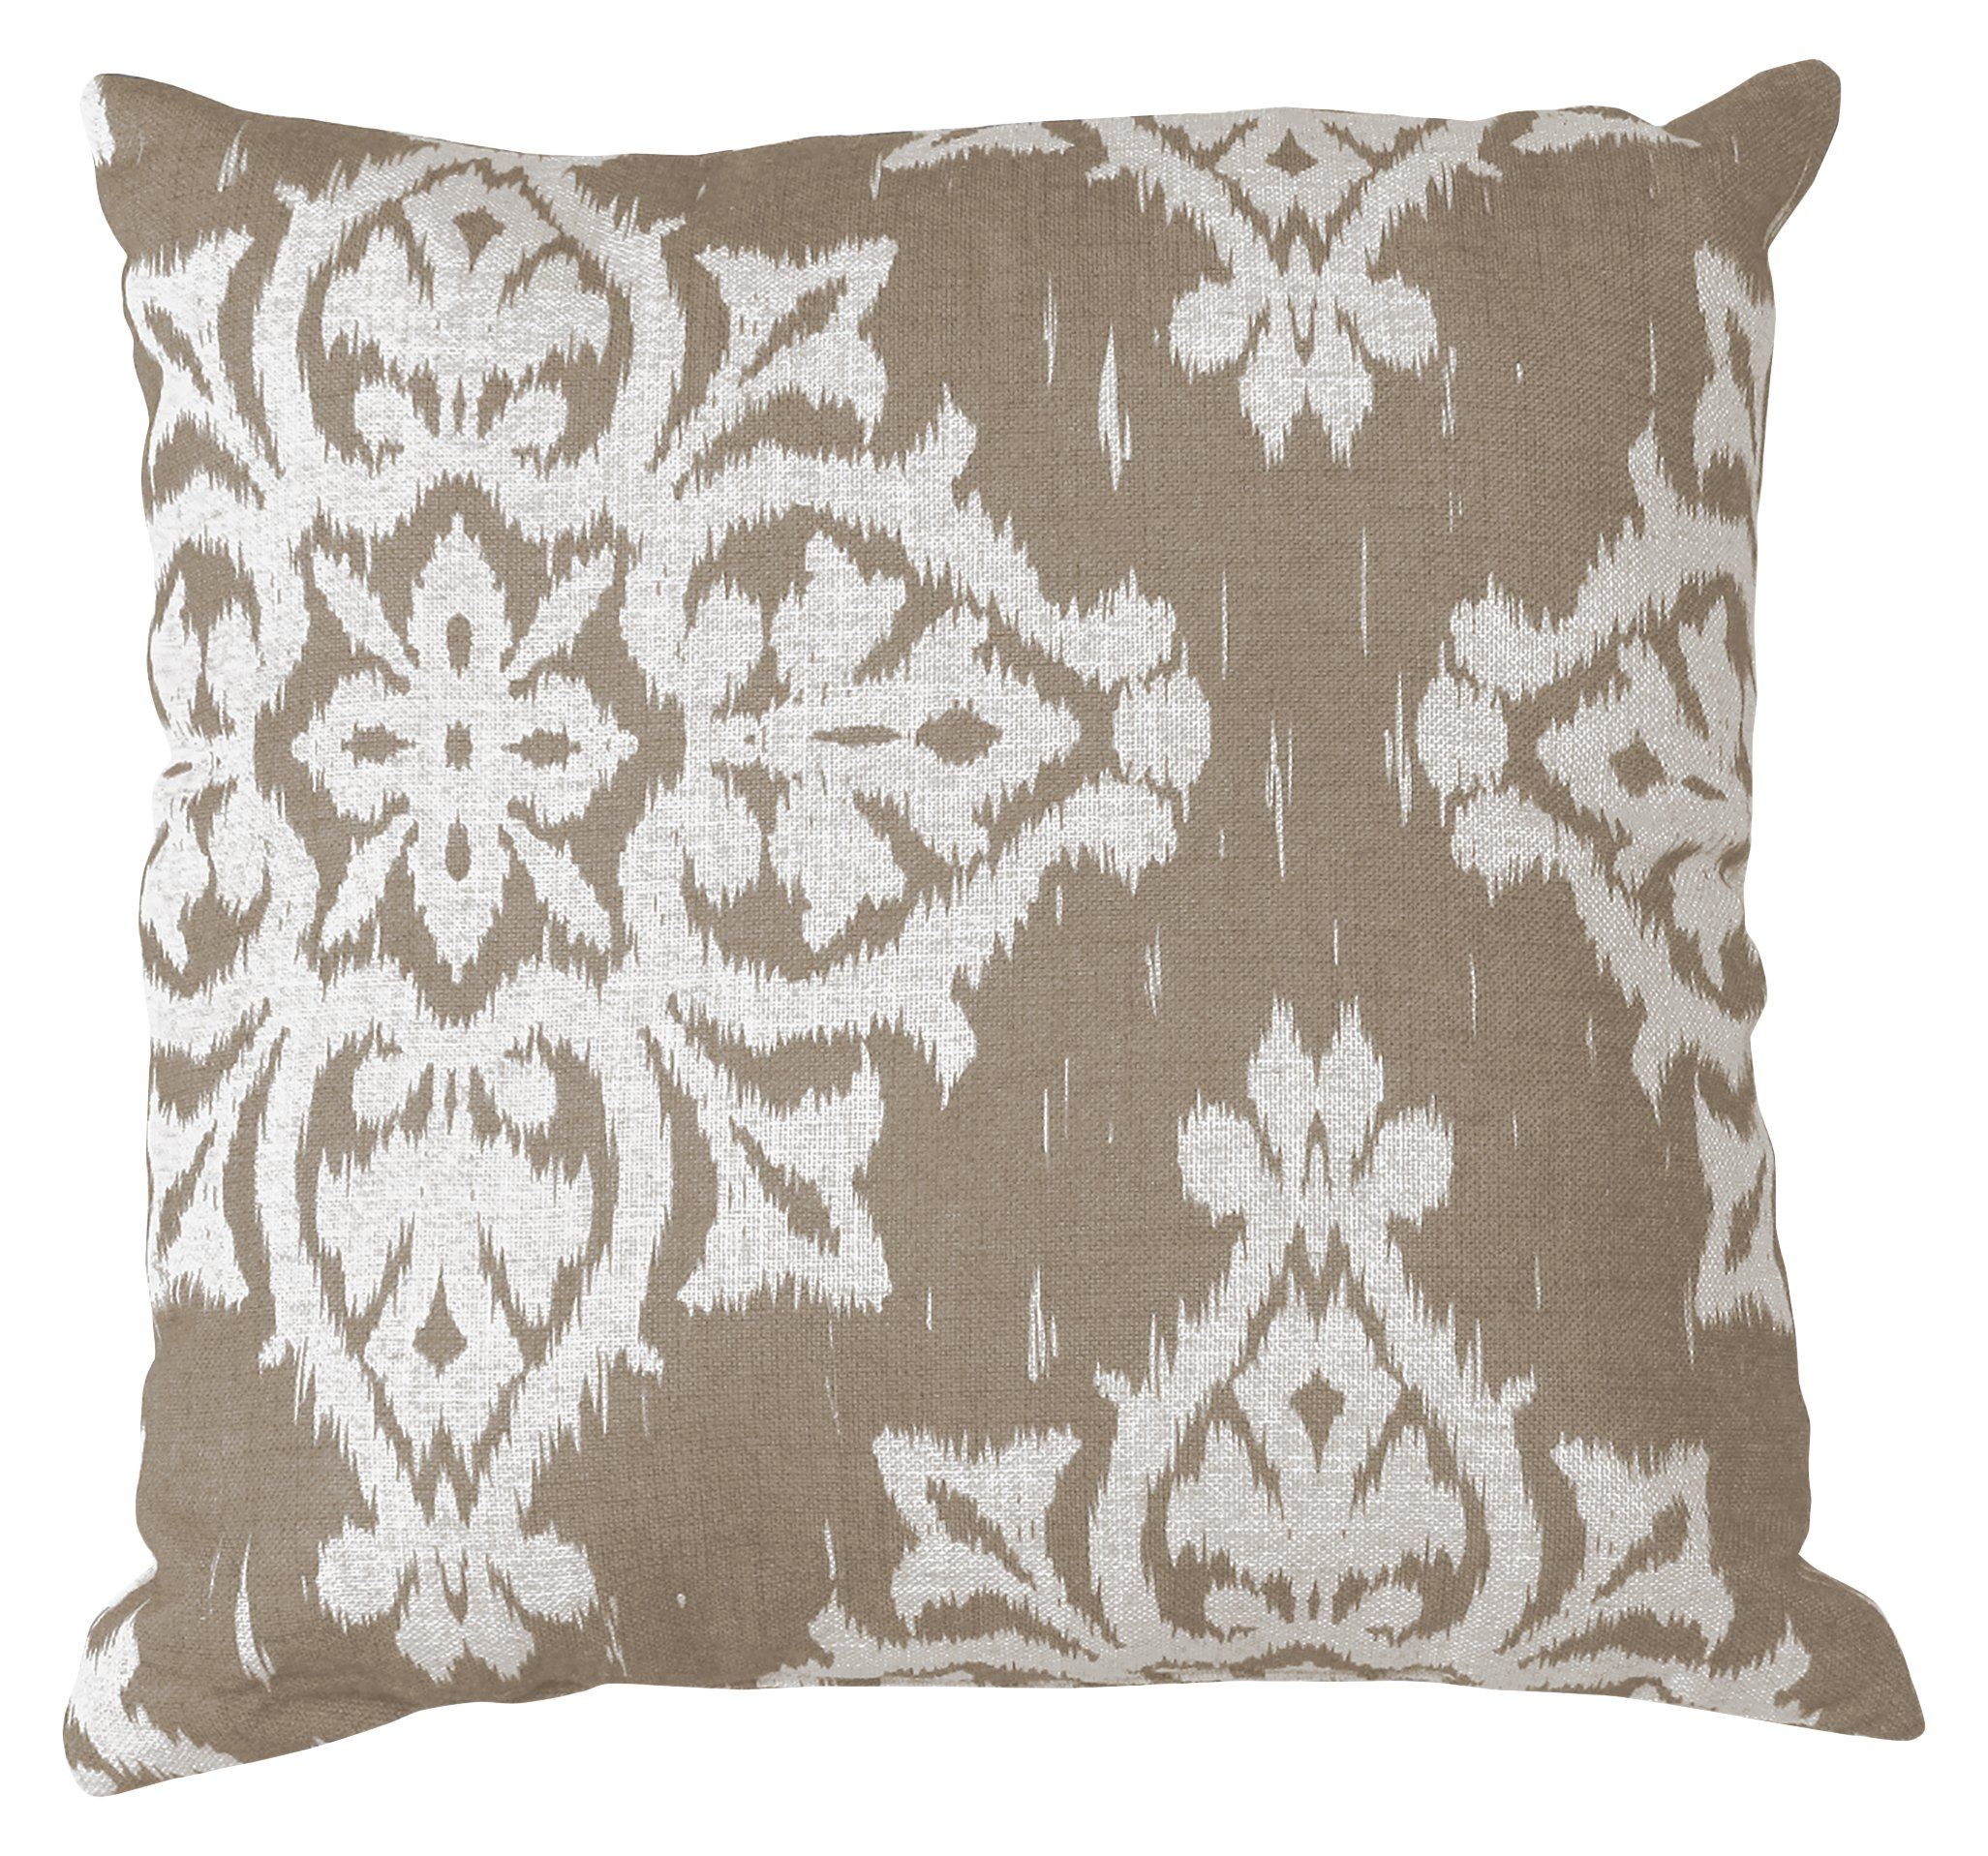 Elrene Home Fashions 026865879315 Decorative Linen Print Couch/Sofa/Bed Cushion Pillow, 18'' x 18'', Taupe